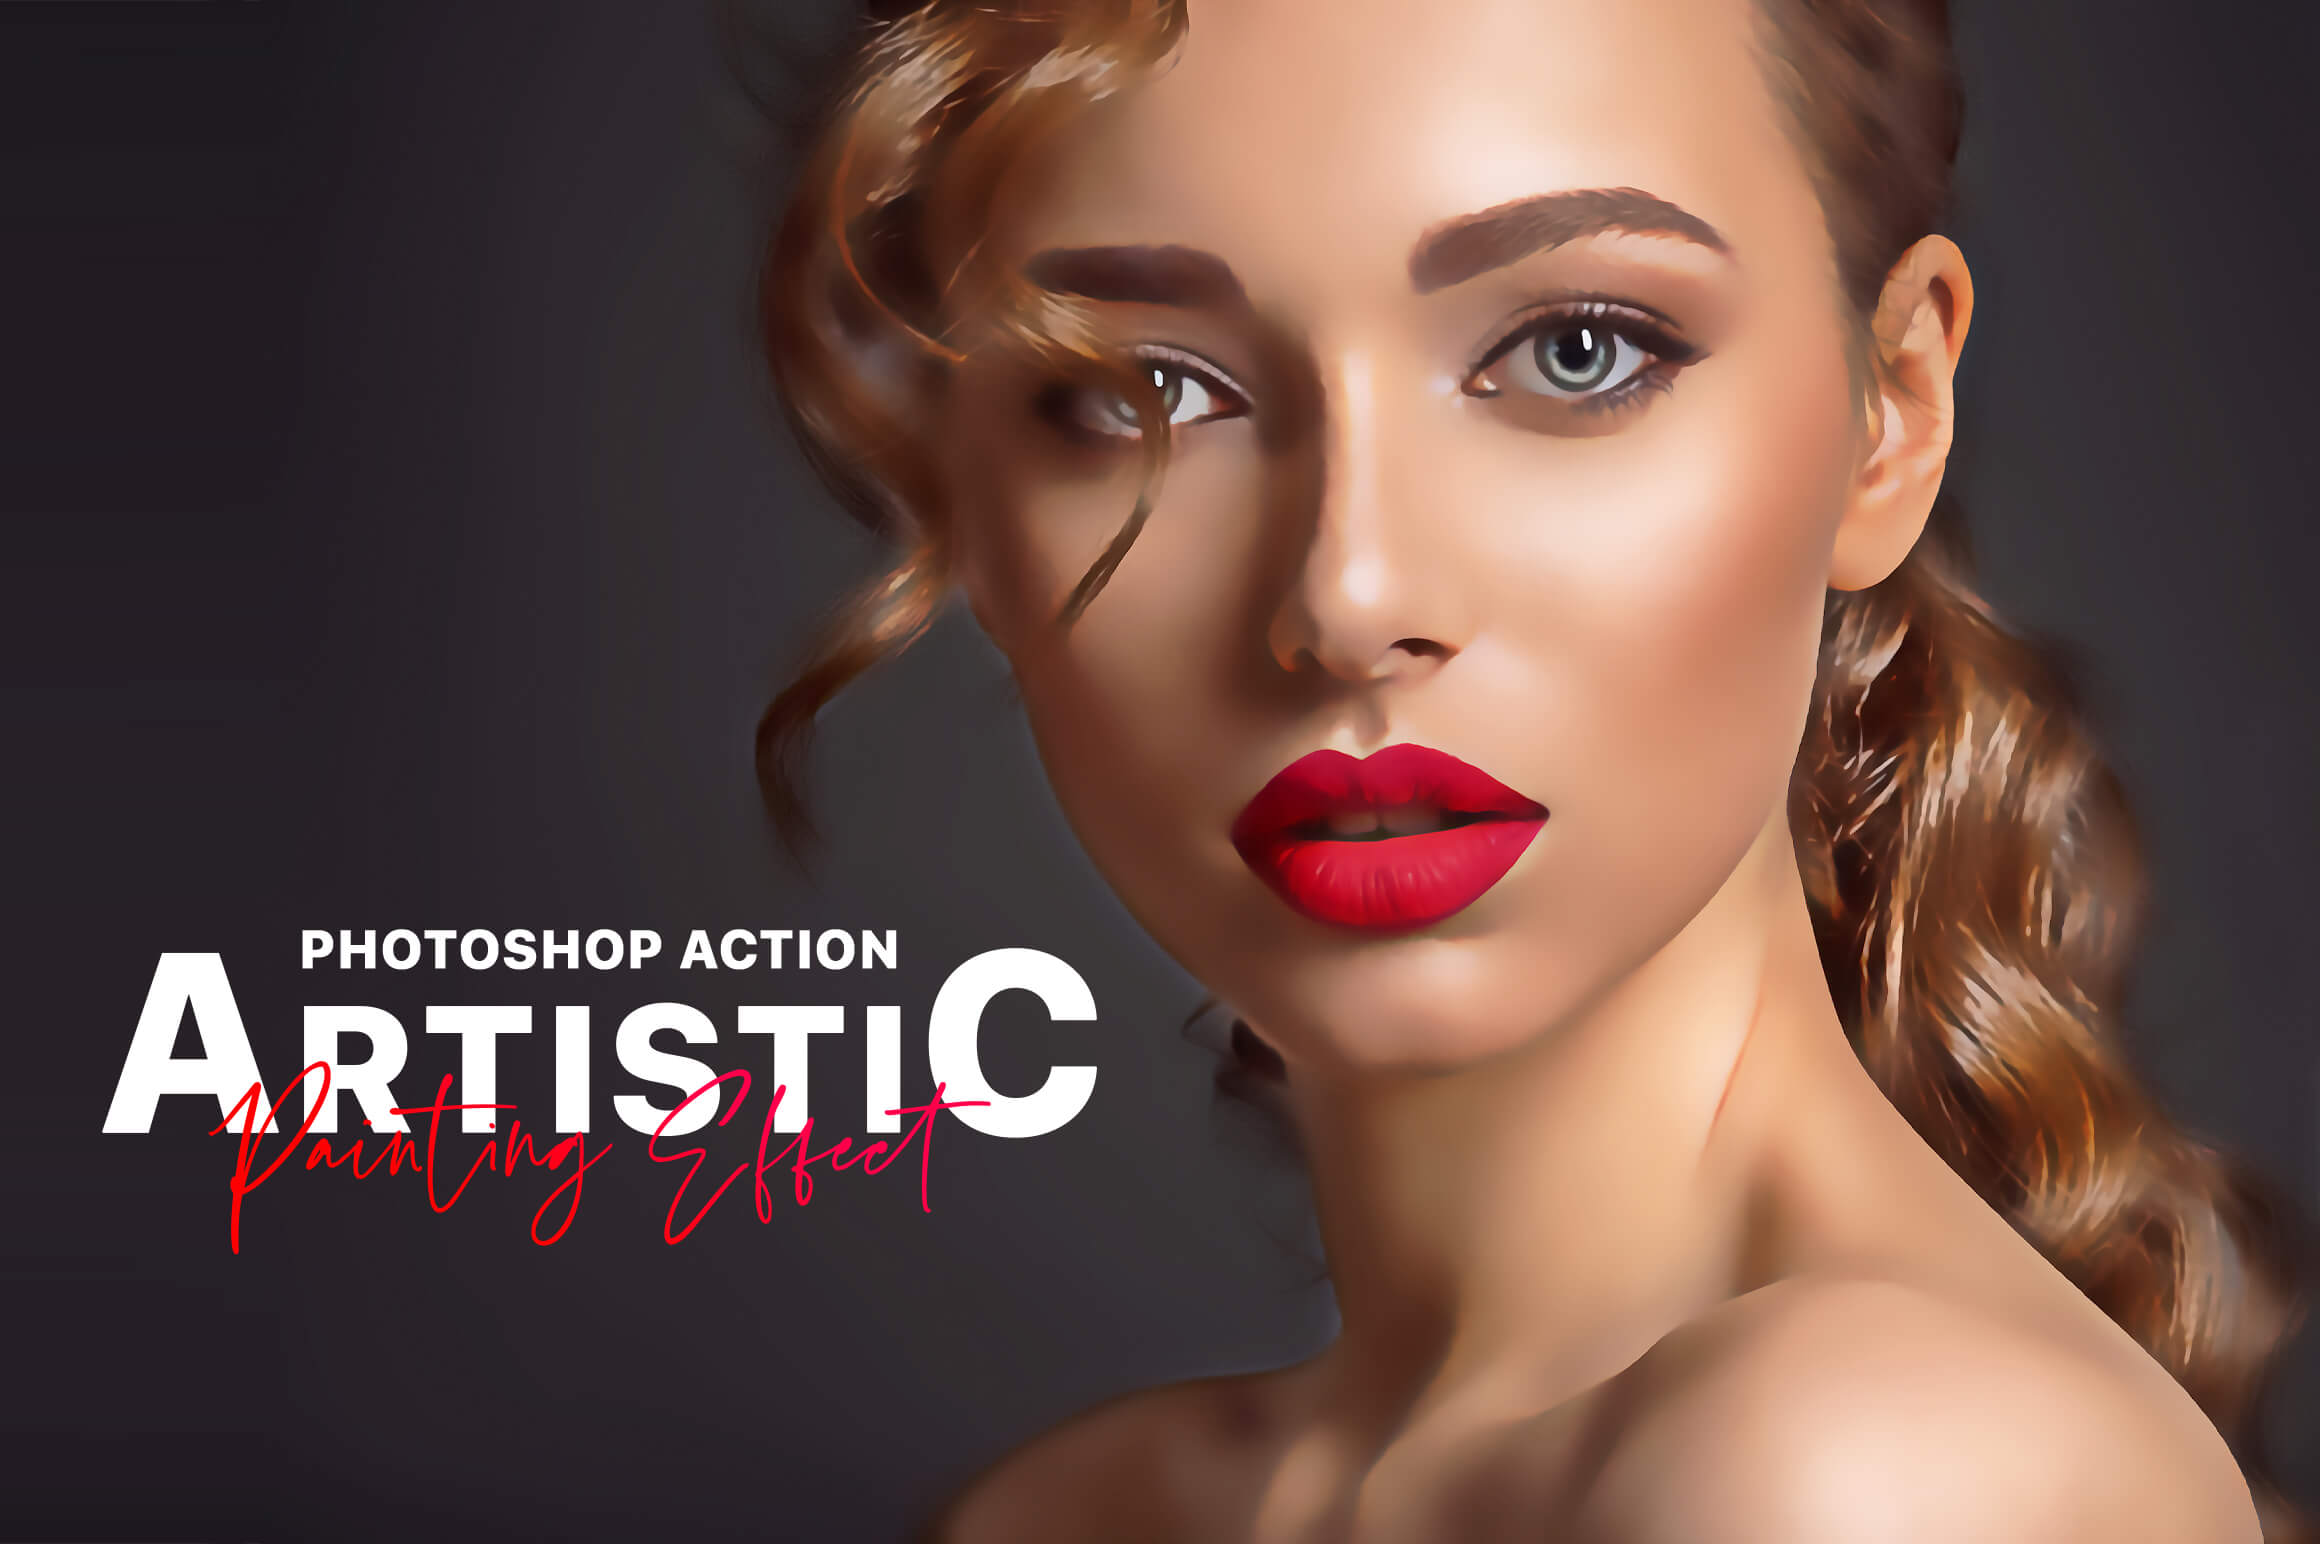 Artistic Painting Effect - Photoshop Action example image 1